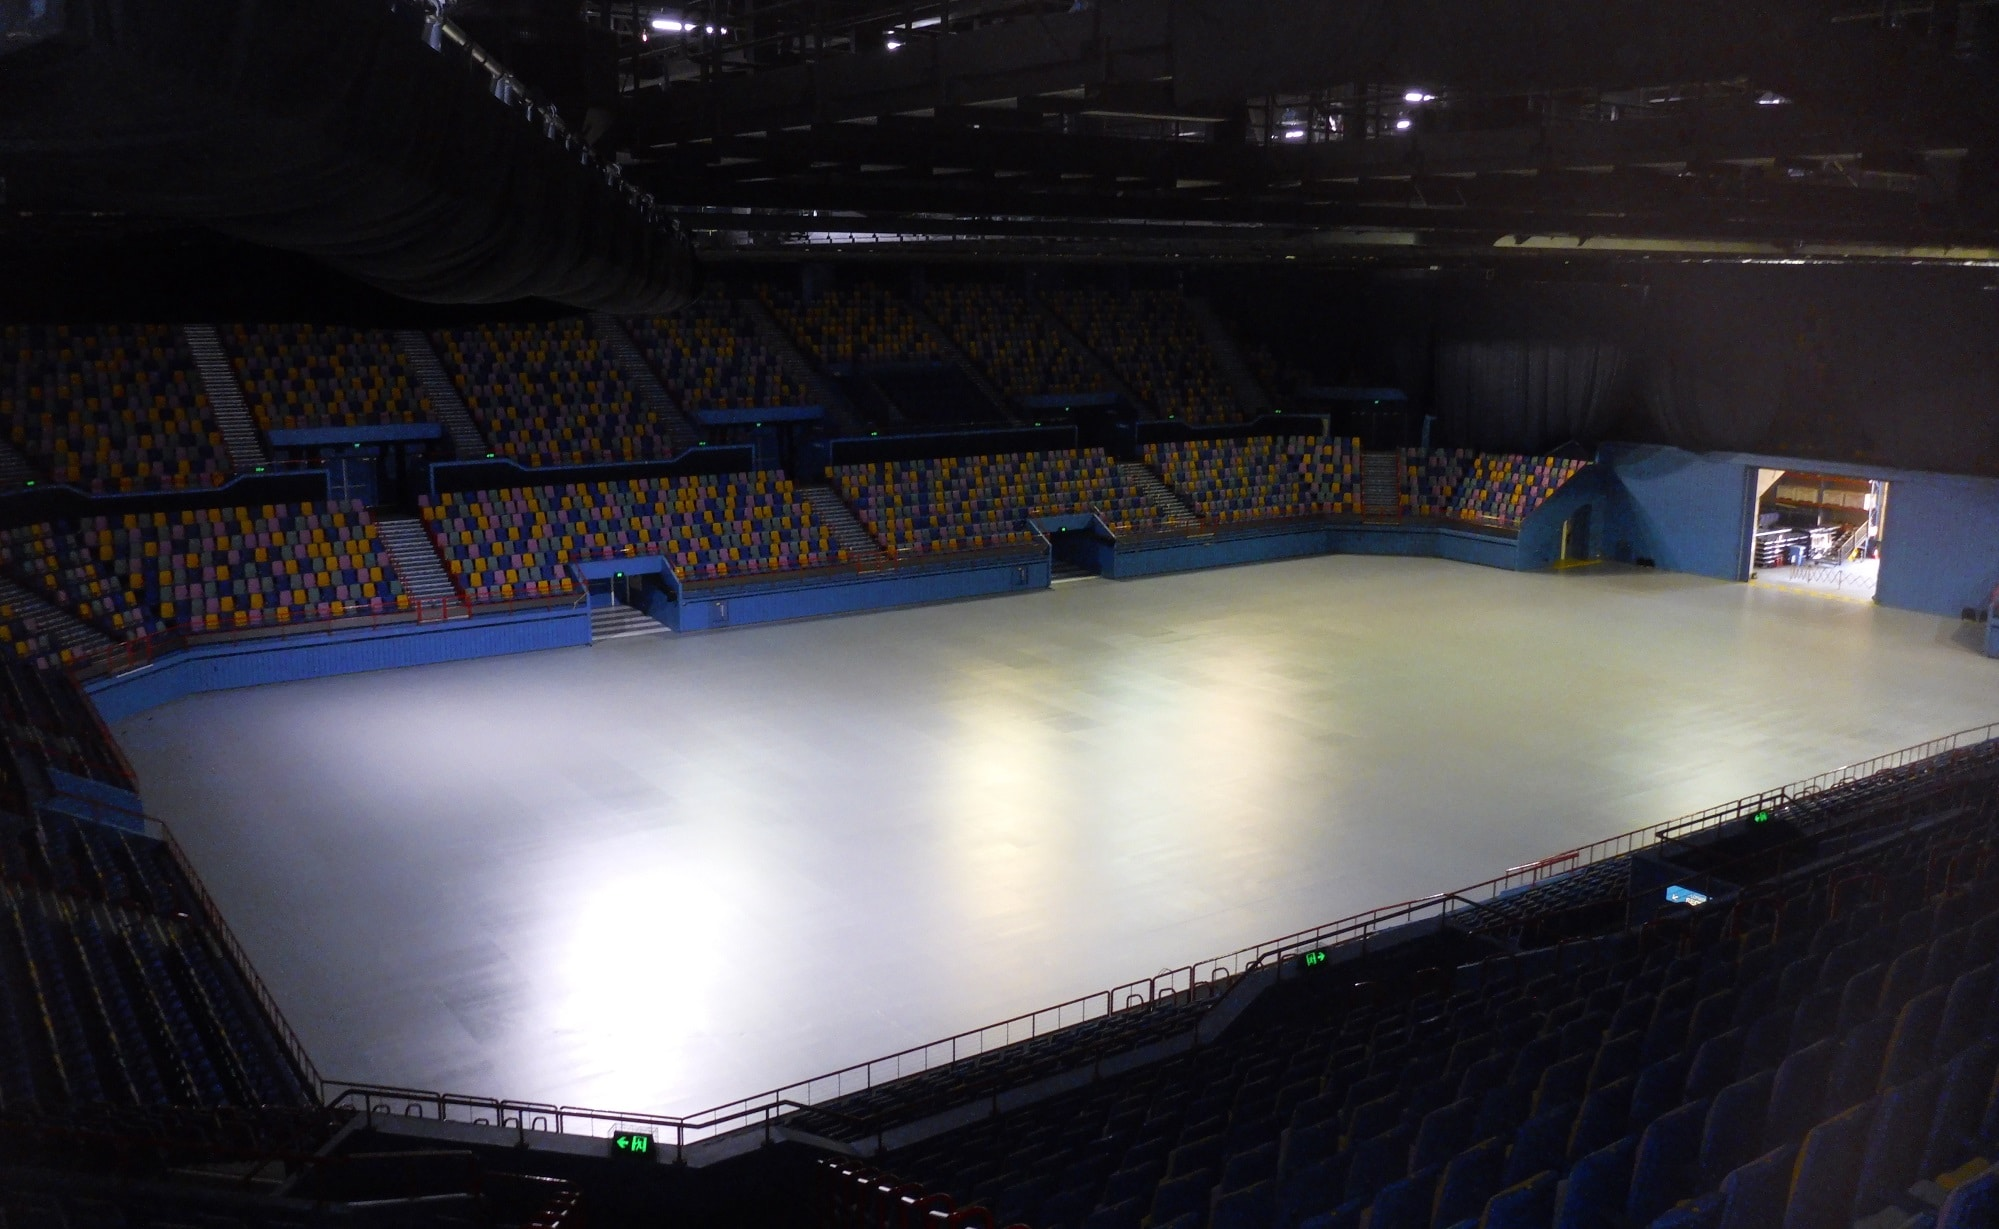 Gleaming Entertainment Centre floors ready for the spotlight!